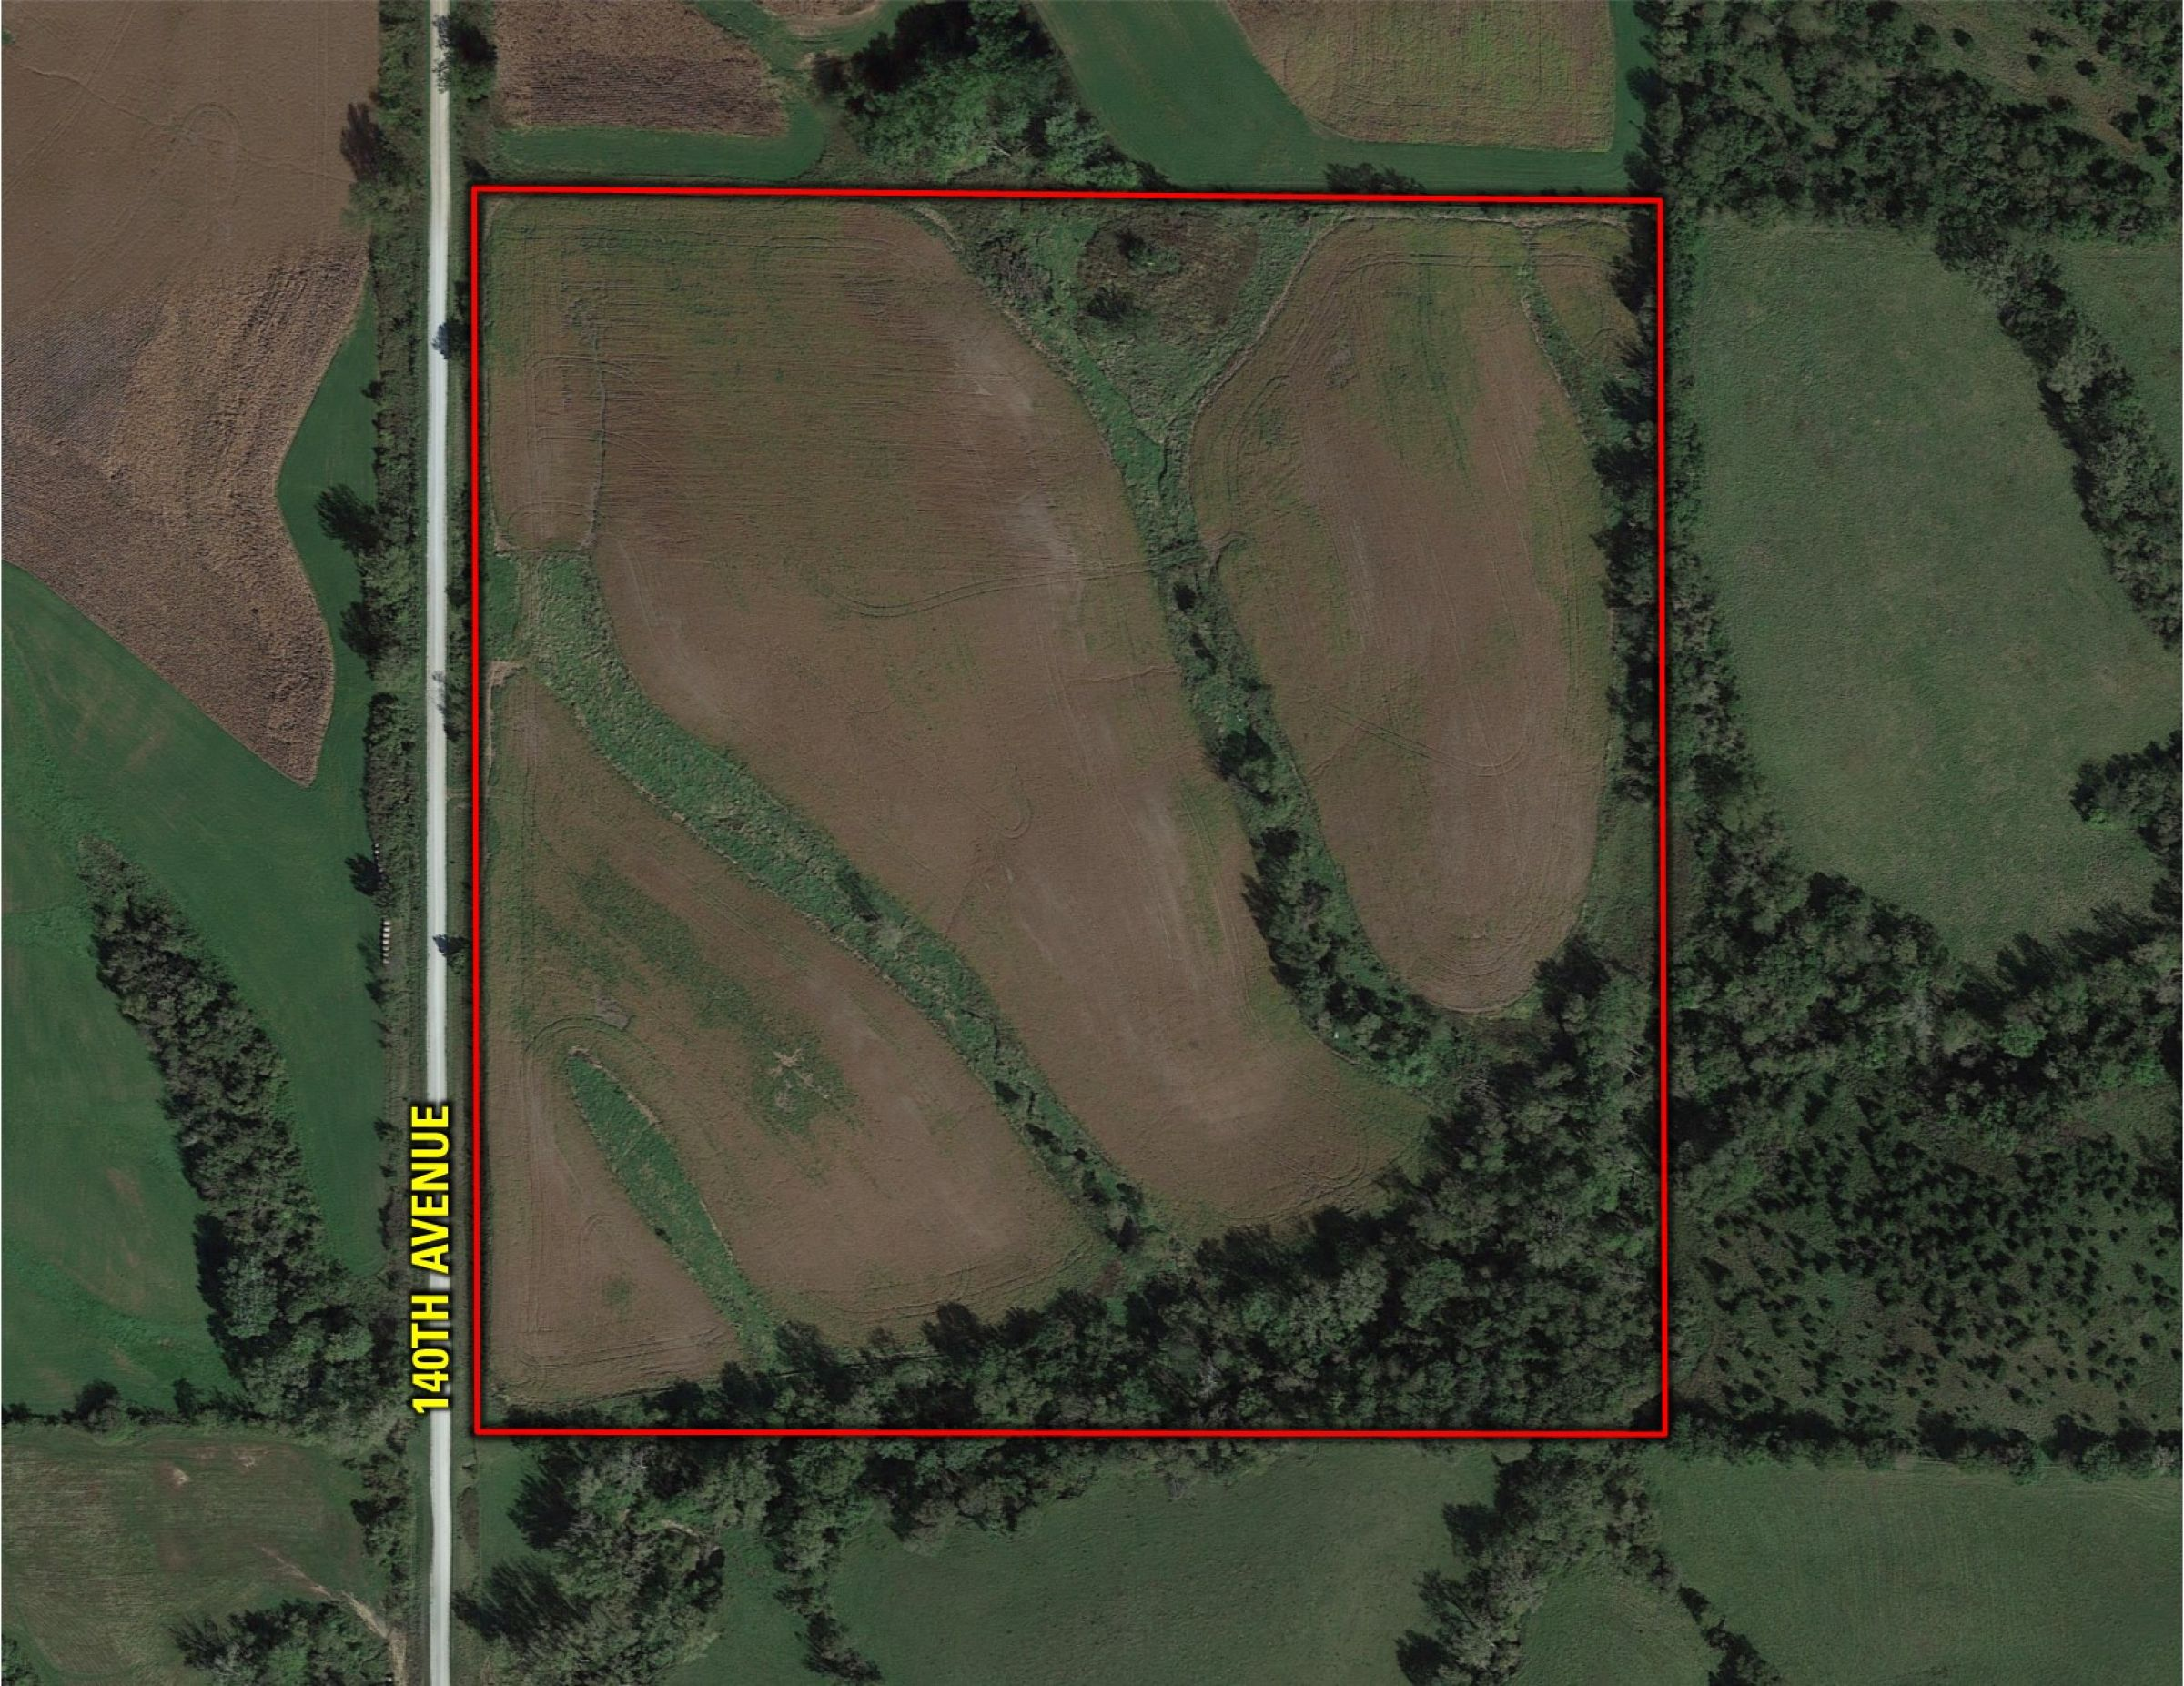 Peoples Company Land for Sale-40 acres Lucas County Iowa 140th-ave-norwood-50151